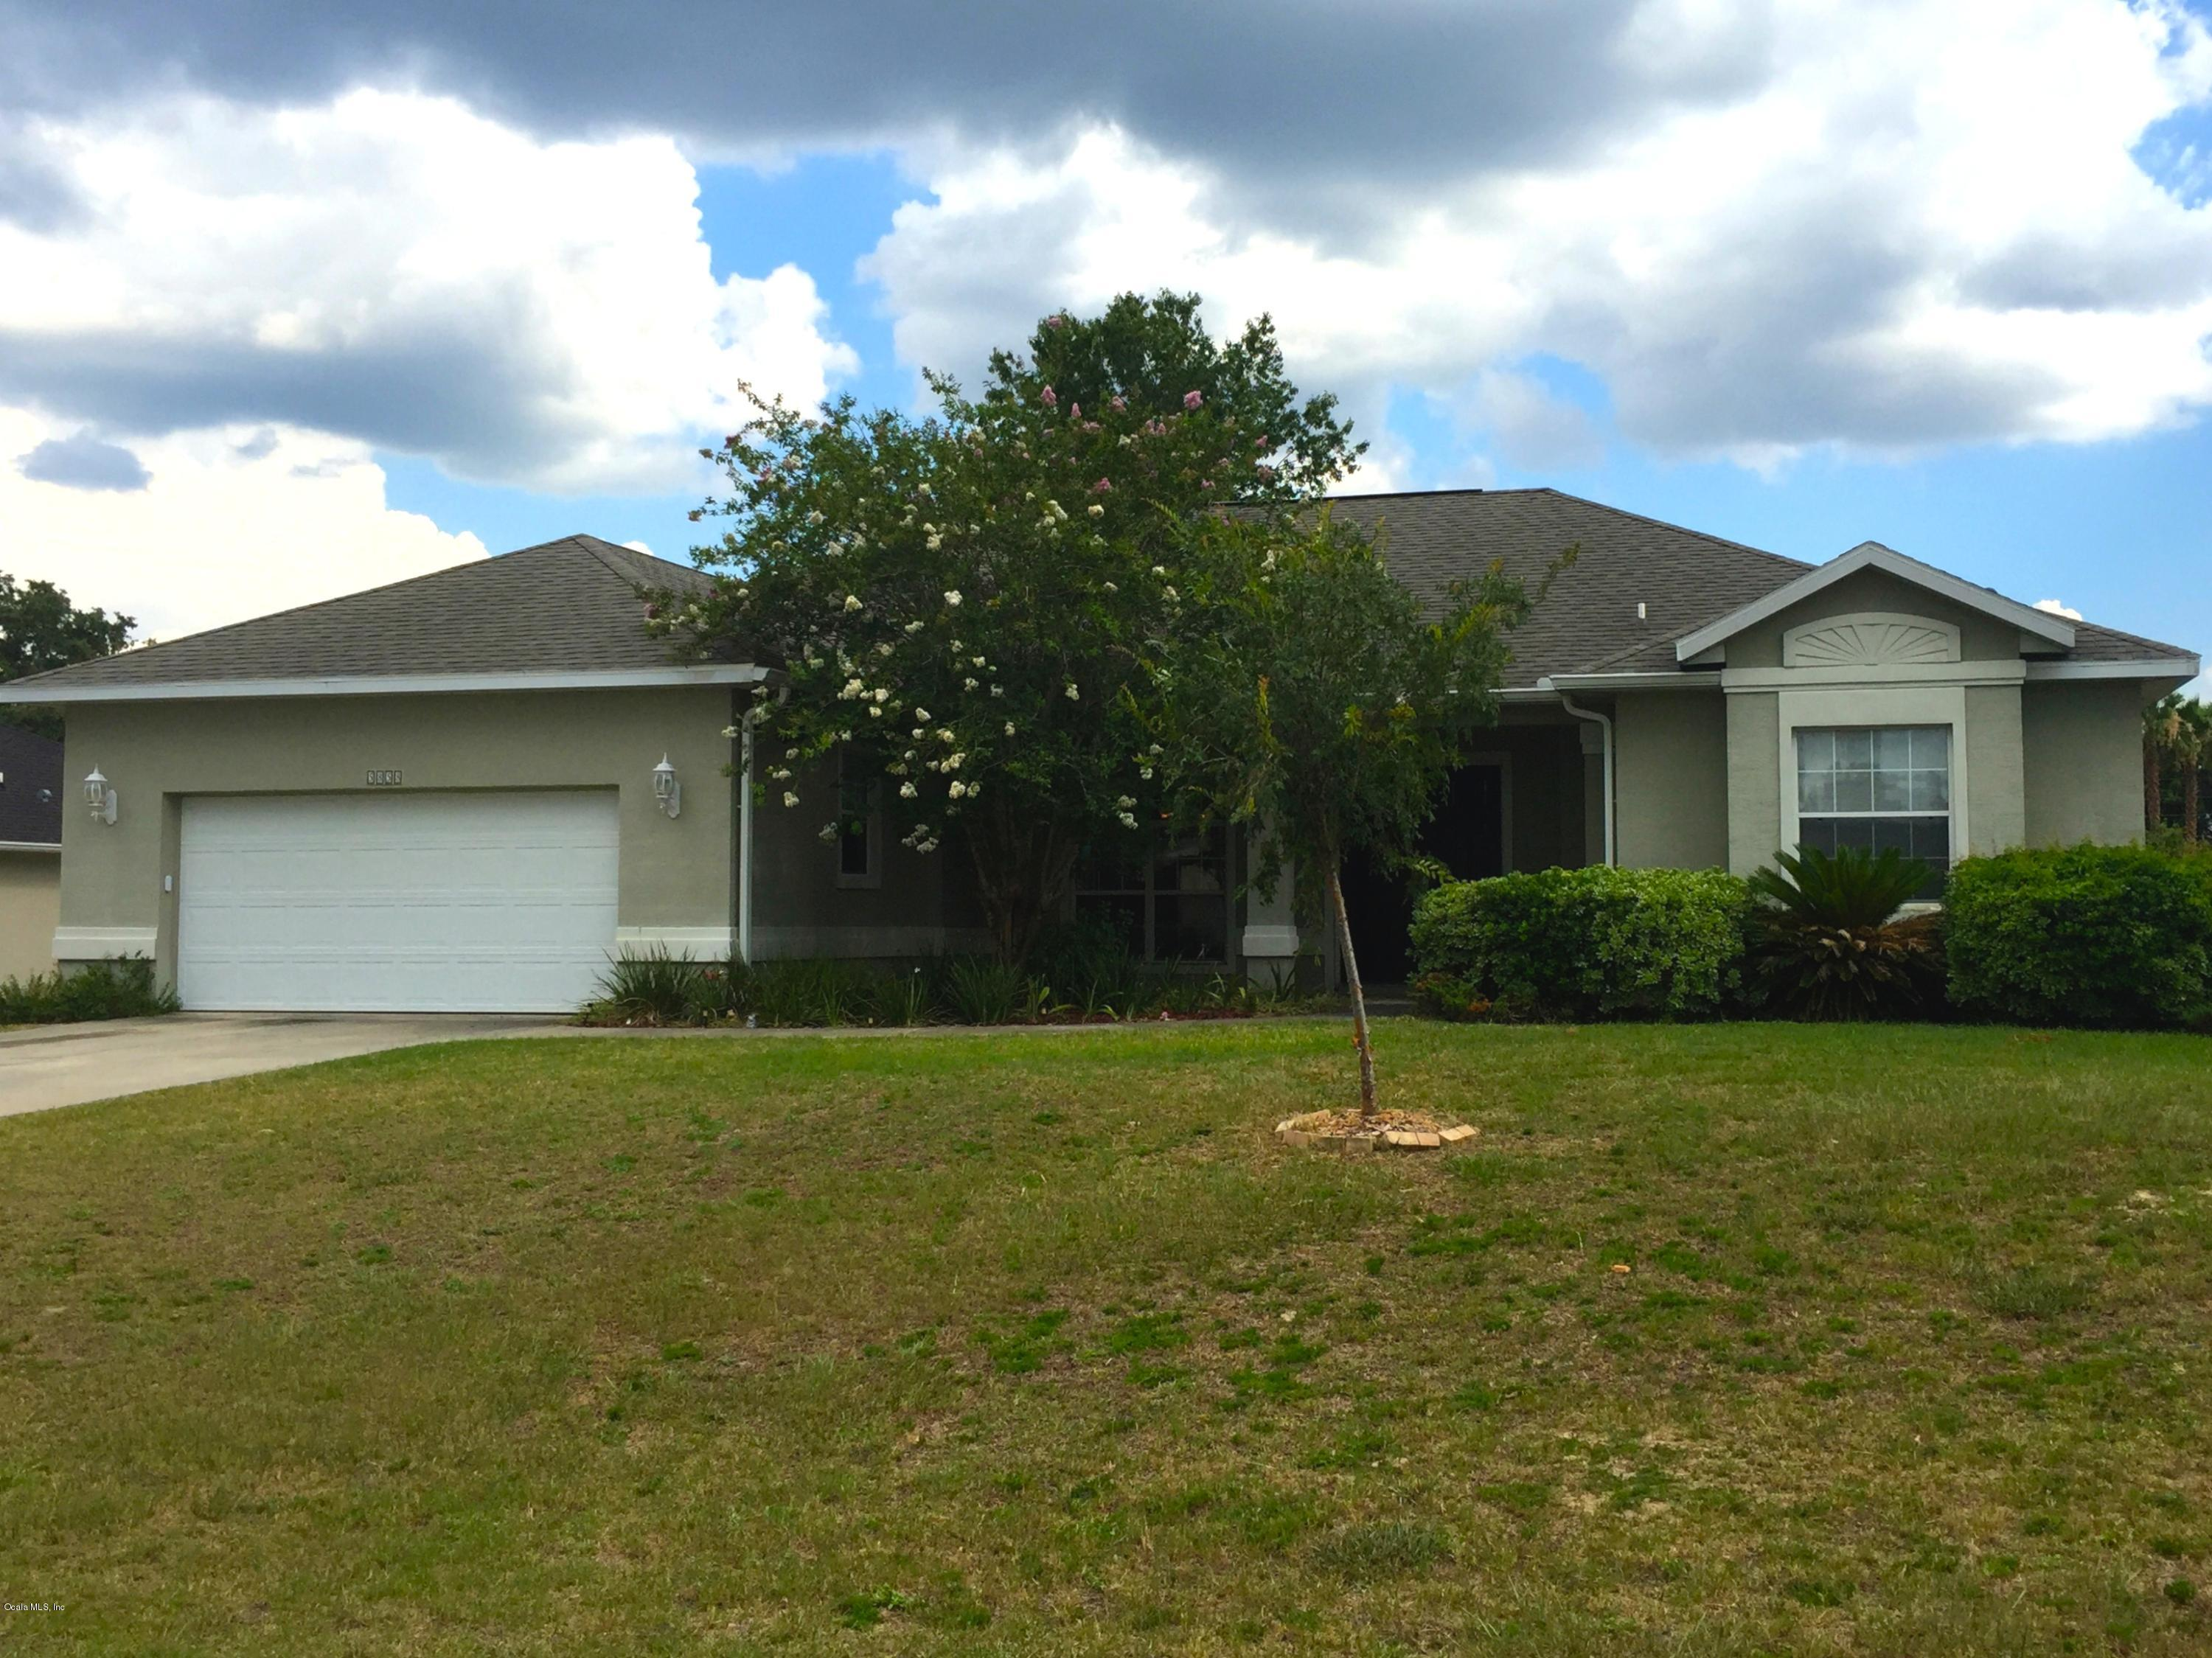 5858 SW 89TH STREET, OCALA, FL 34476